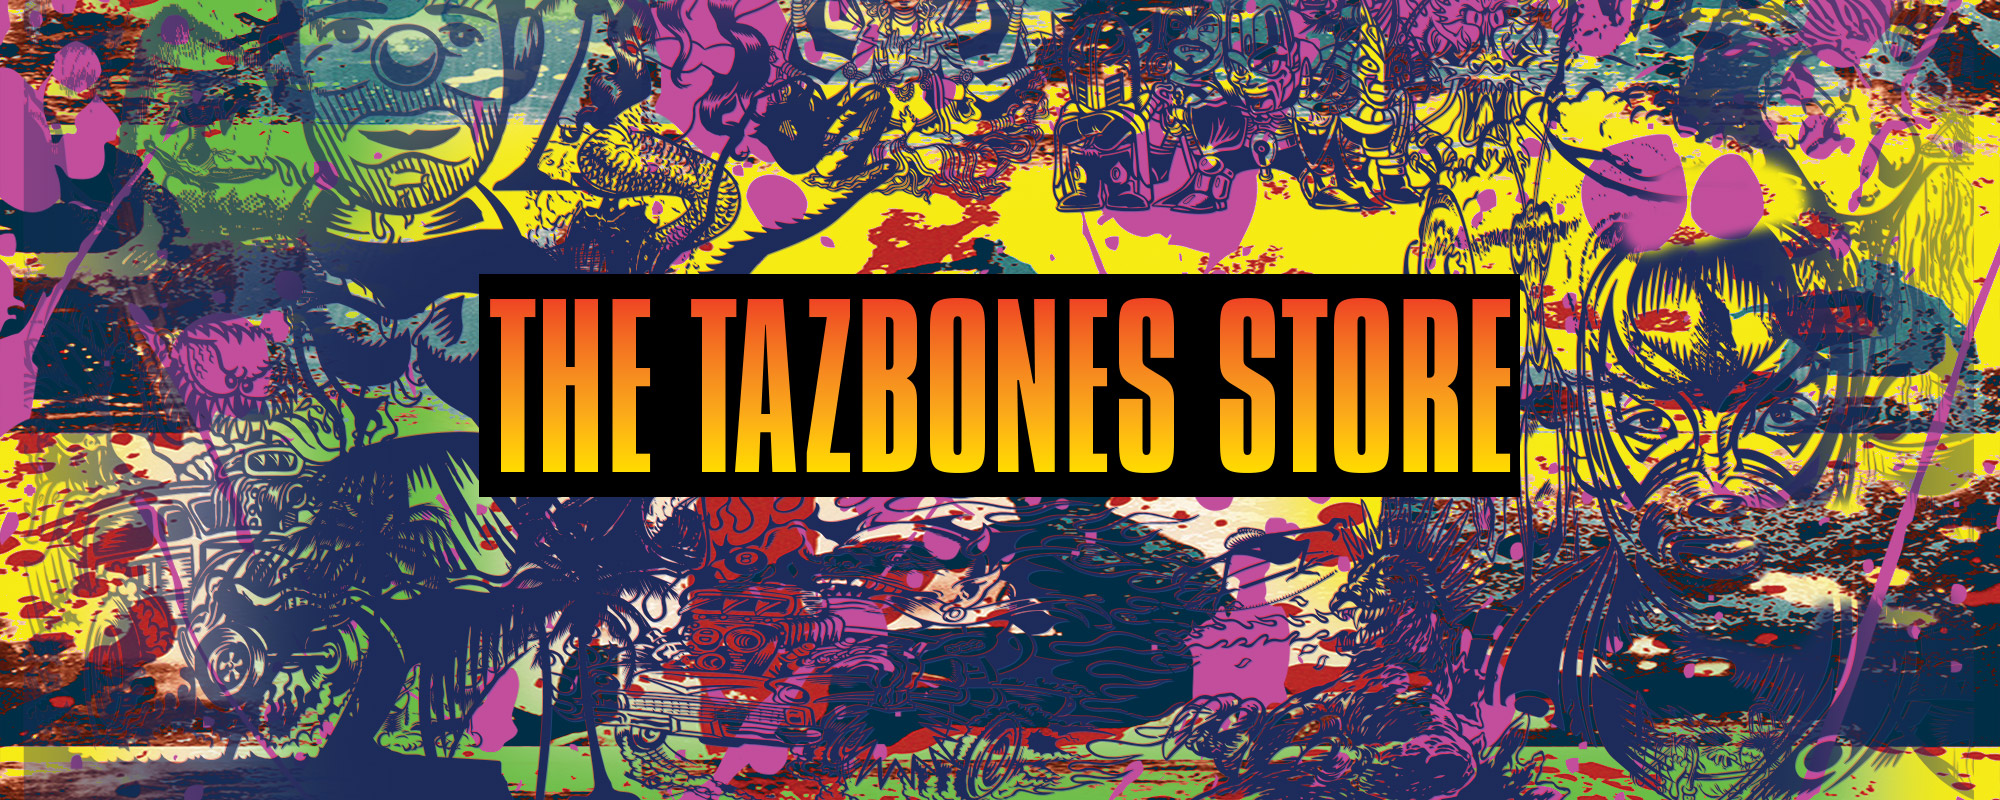 TazBoneS Header - Buy